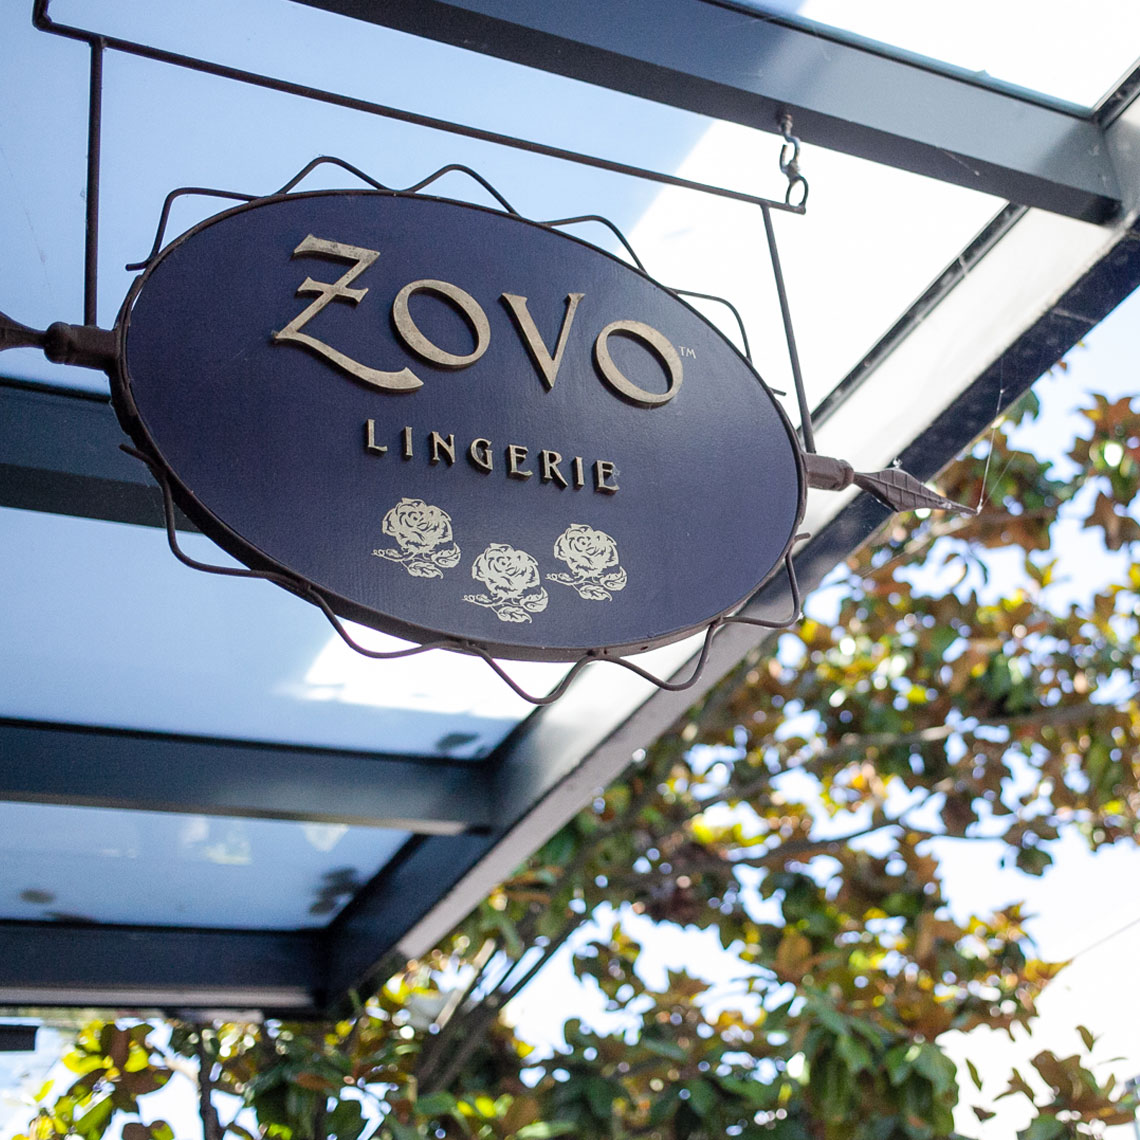 fb5462fcd8d3c Zovo also features the complete assortment of the recently launched Zovo  Collection of underpinnings, sleepwear and loungewear.